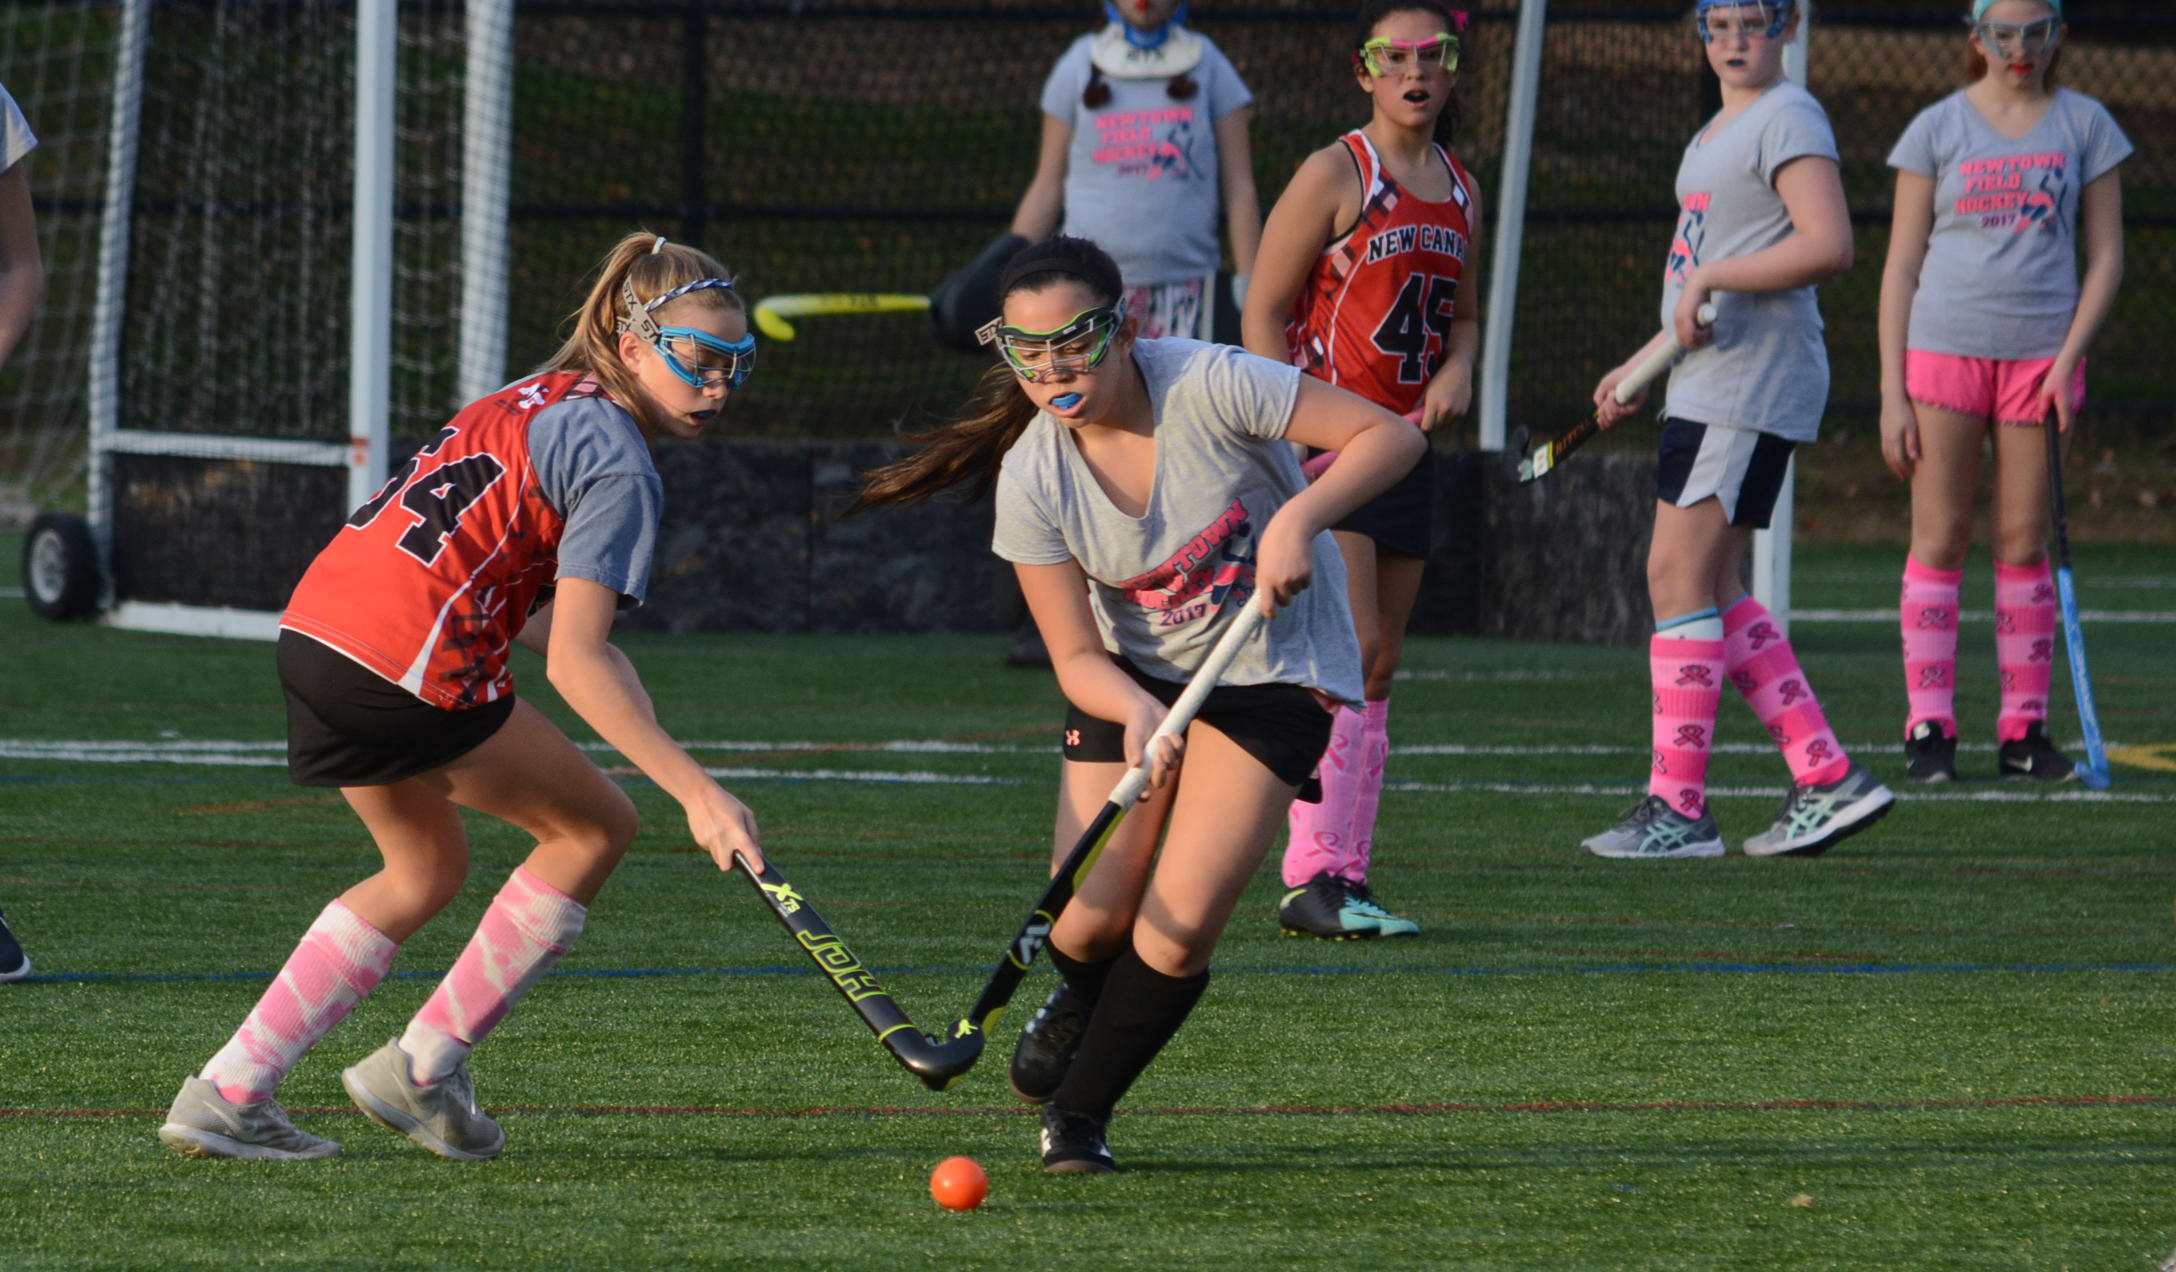 Expansion Of Youth Field Hockey Playing Options Stands To Pay